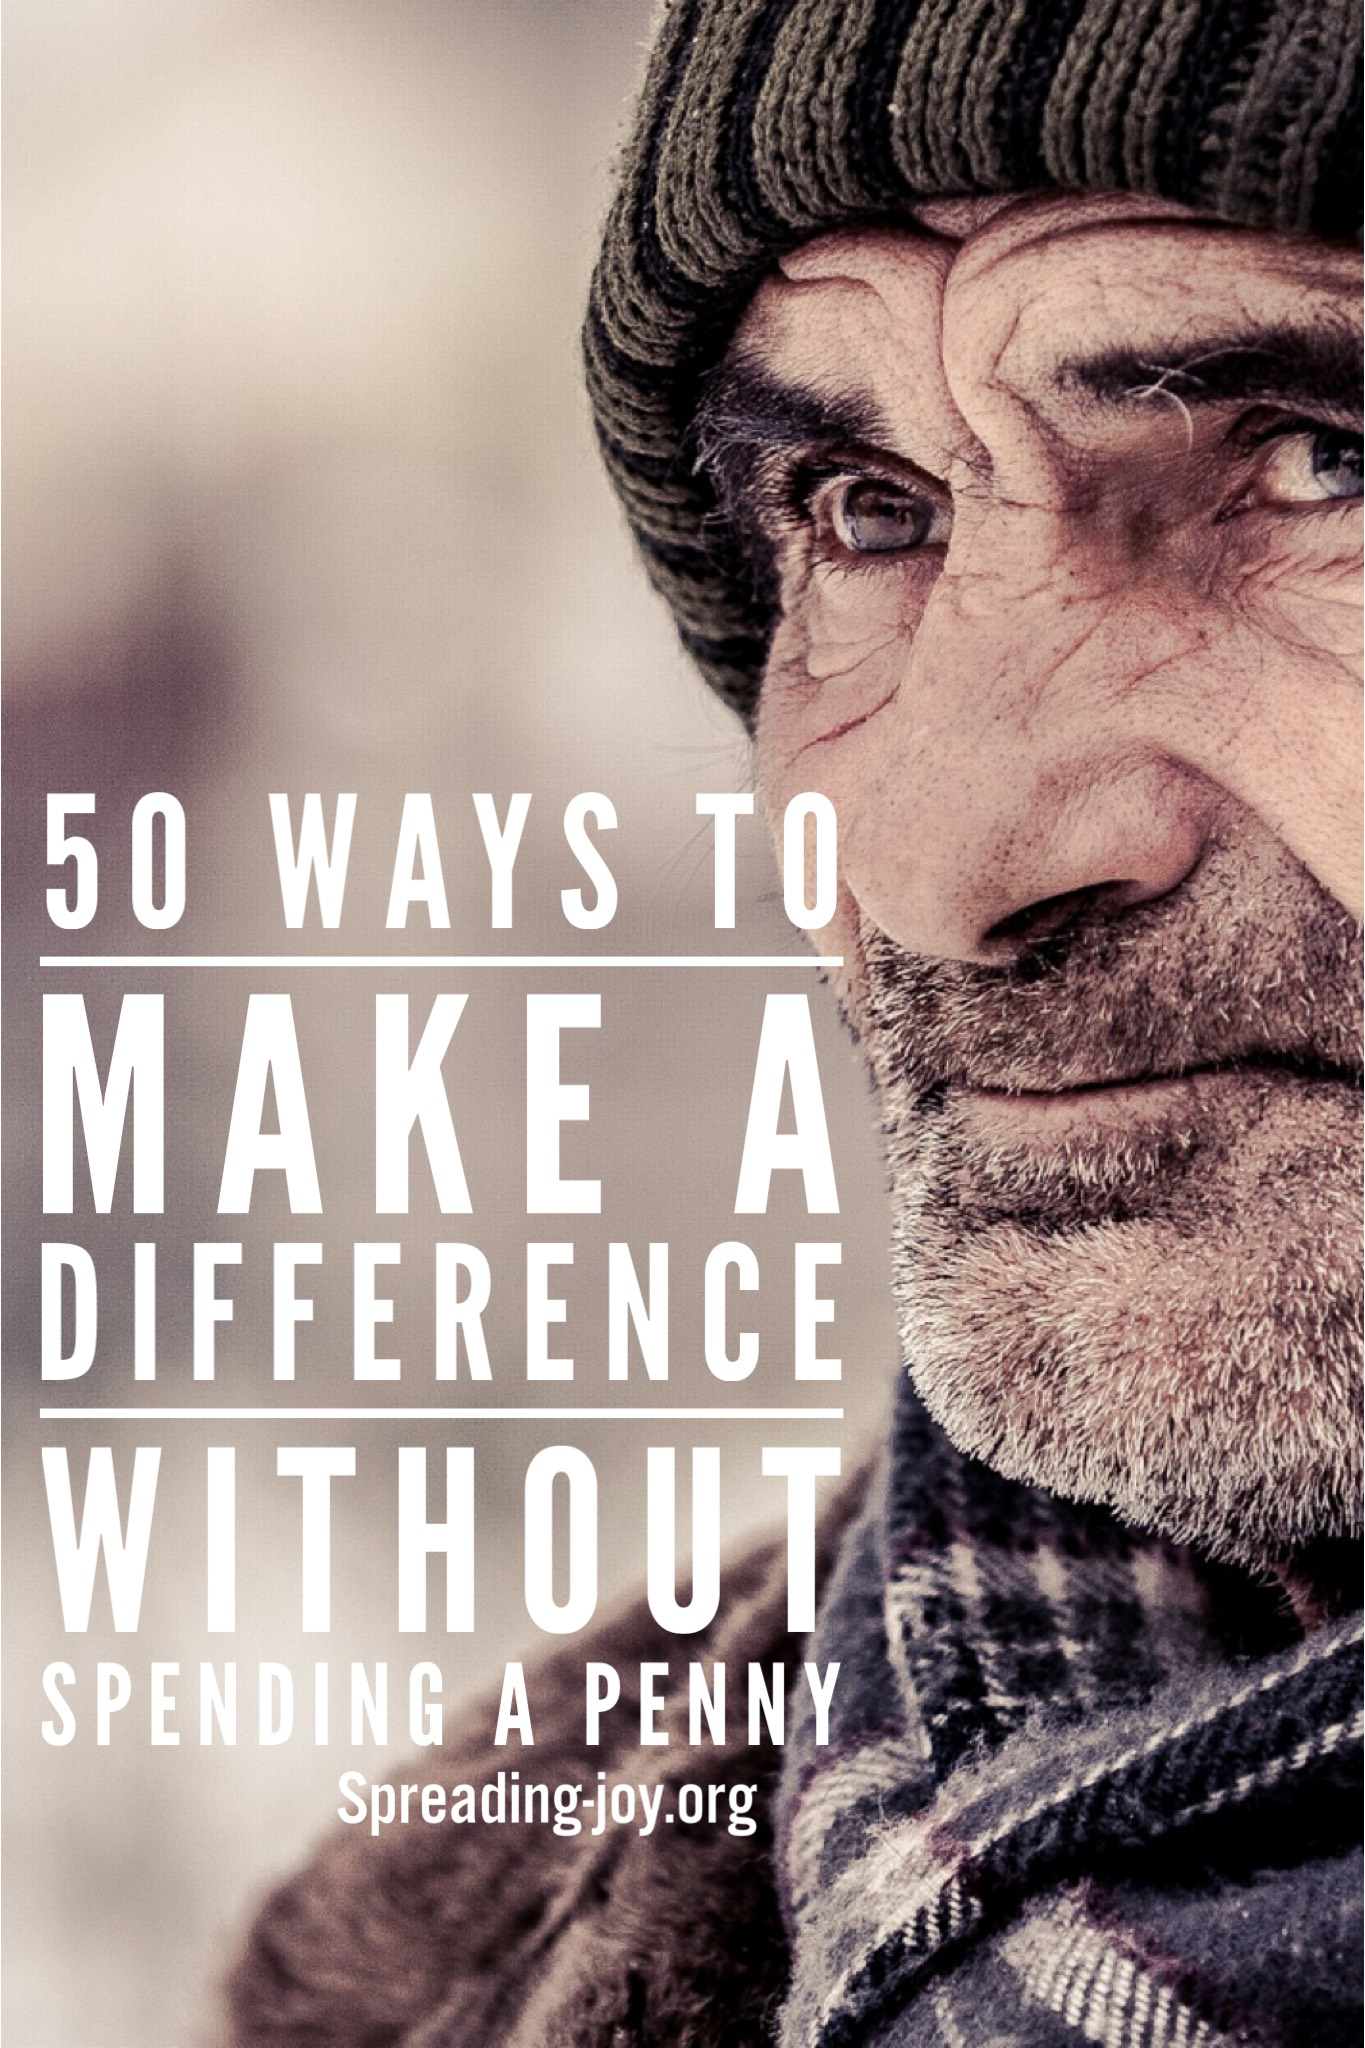 50 Ways to Make a Difference